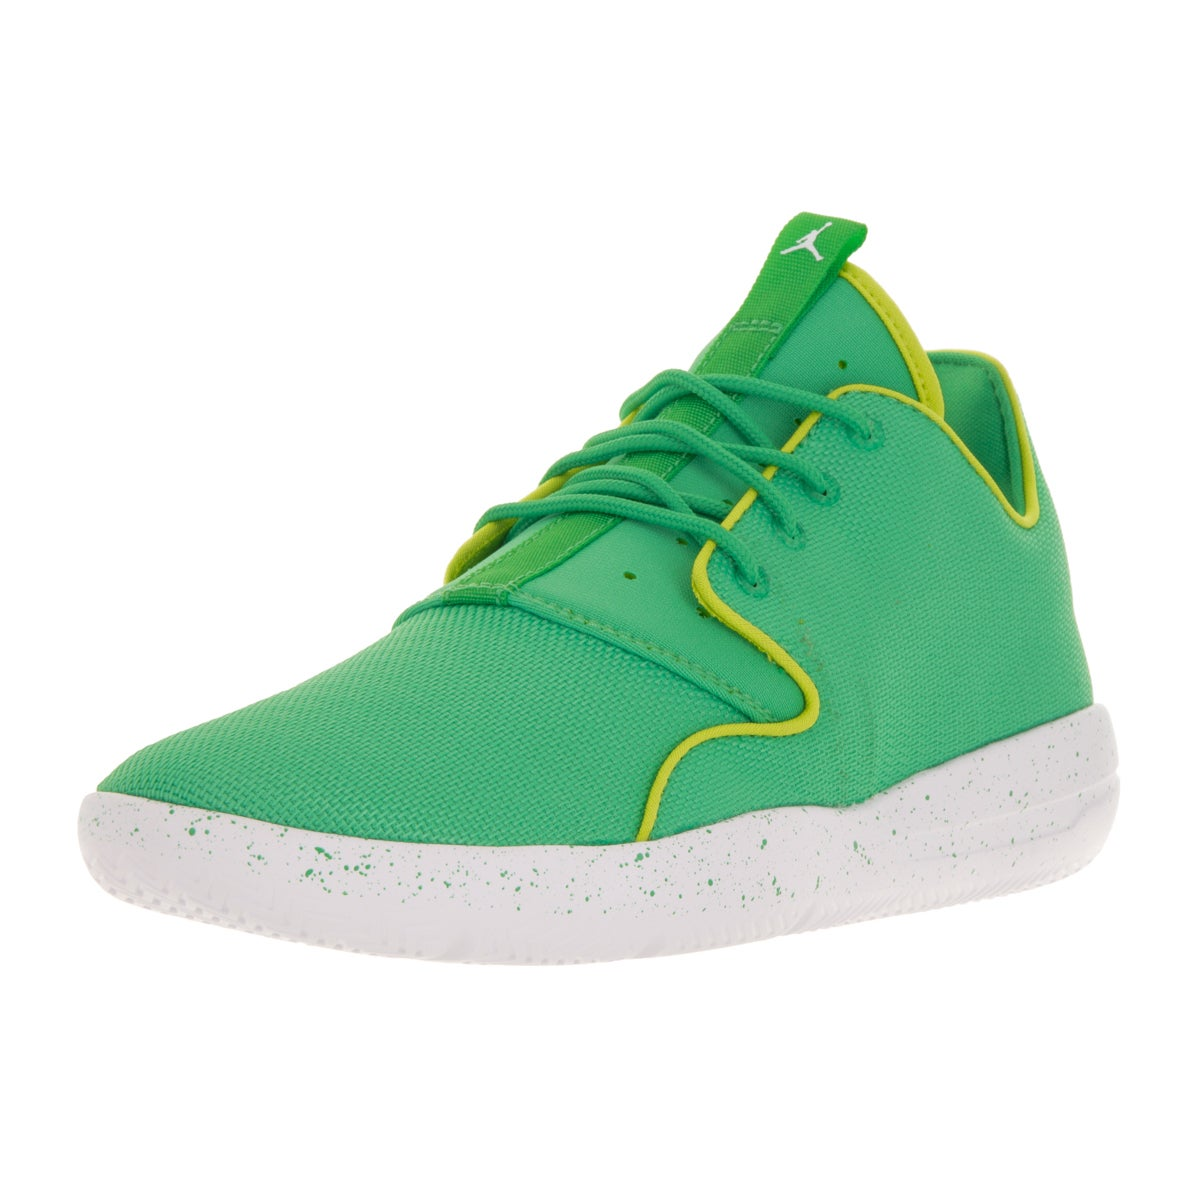 Nike Jordan Eclipse Running or Casual Shoes Sneakers GY Youth size 7.5